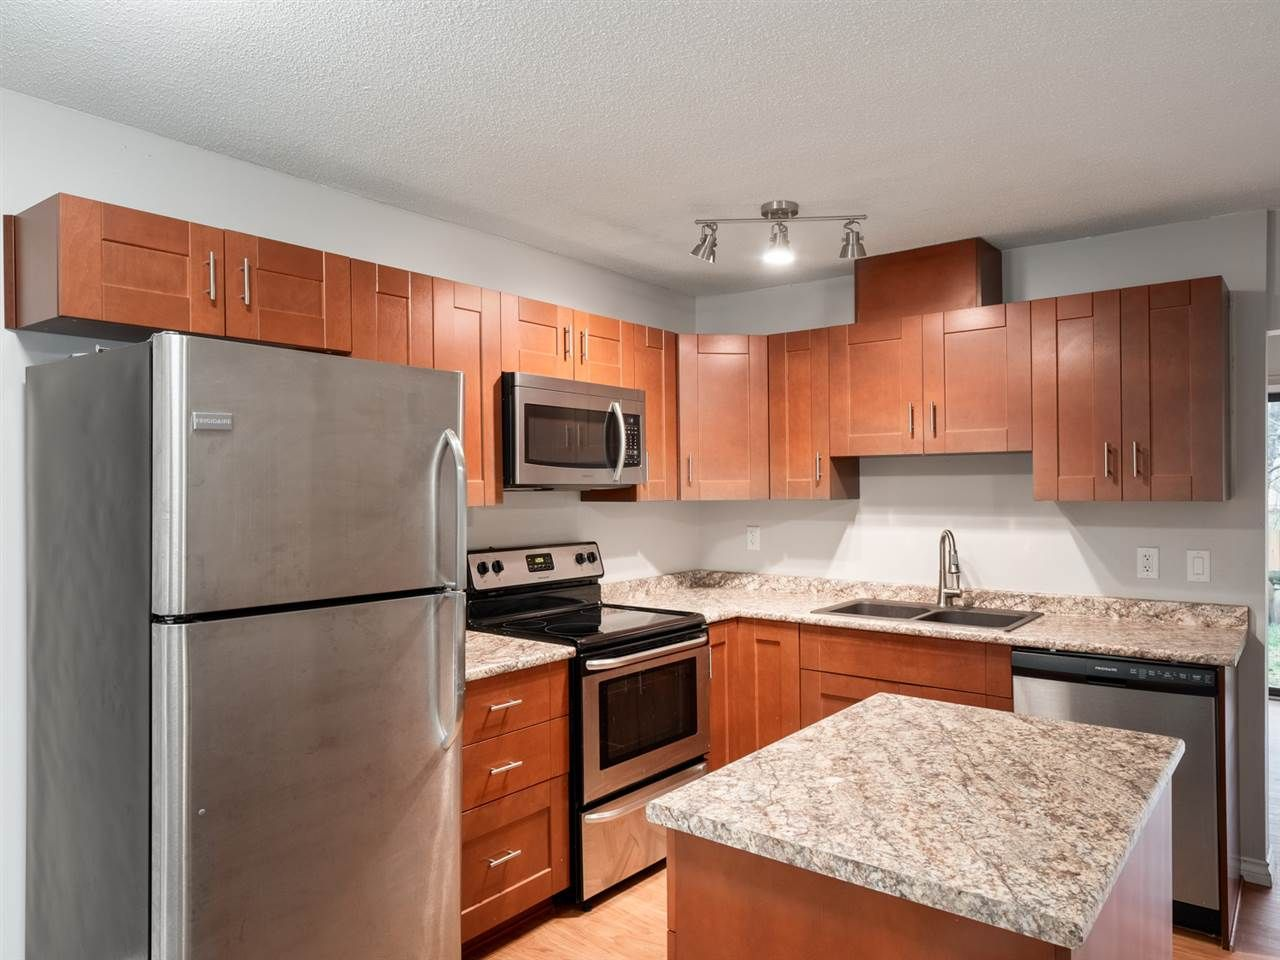 """Main Photo: 3234 GANYMEDE Drive in Burnaby: Simon Fraser Hills Townhouse for sale in """"SIMON FRASER VILLAGE"""" (Burnaby North)  : MLS®# R2328379"""